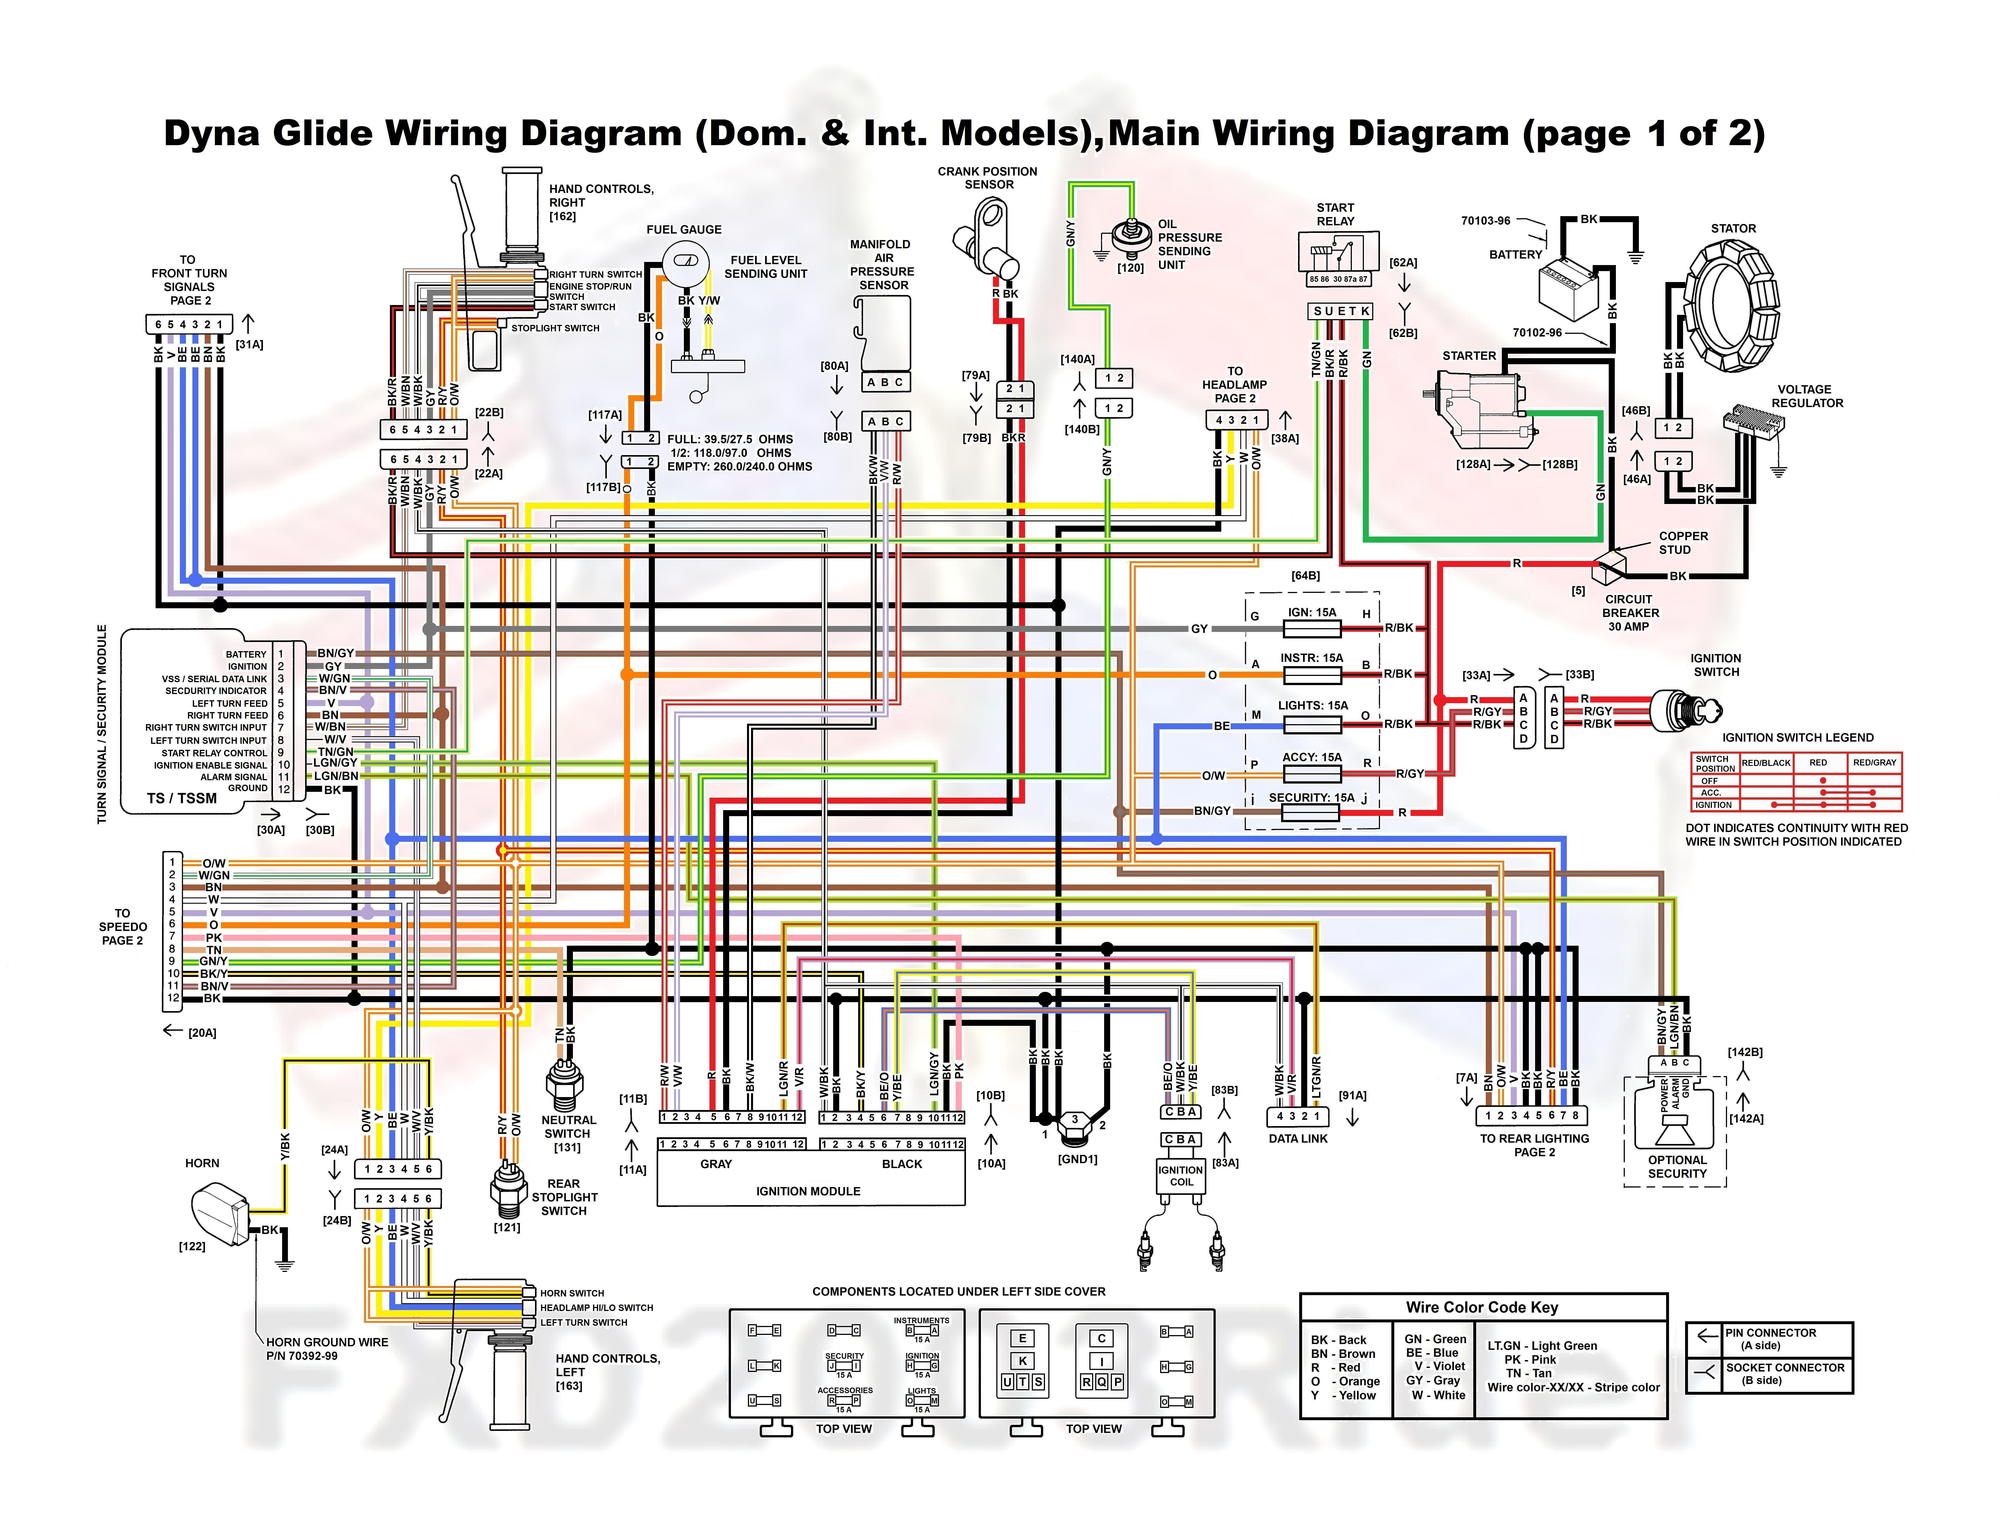 2006 harley davidson dyna glide wiring diagram fuse question - harley davidson forums